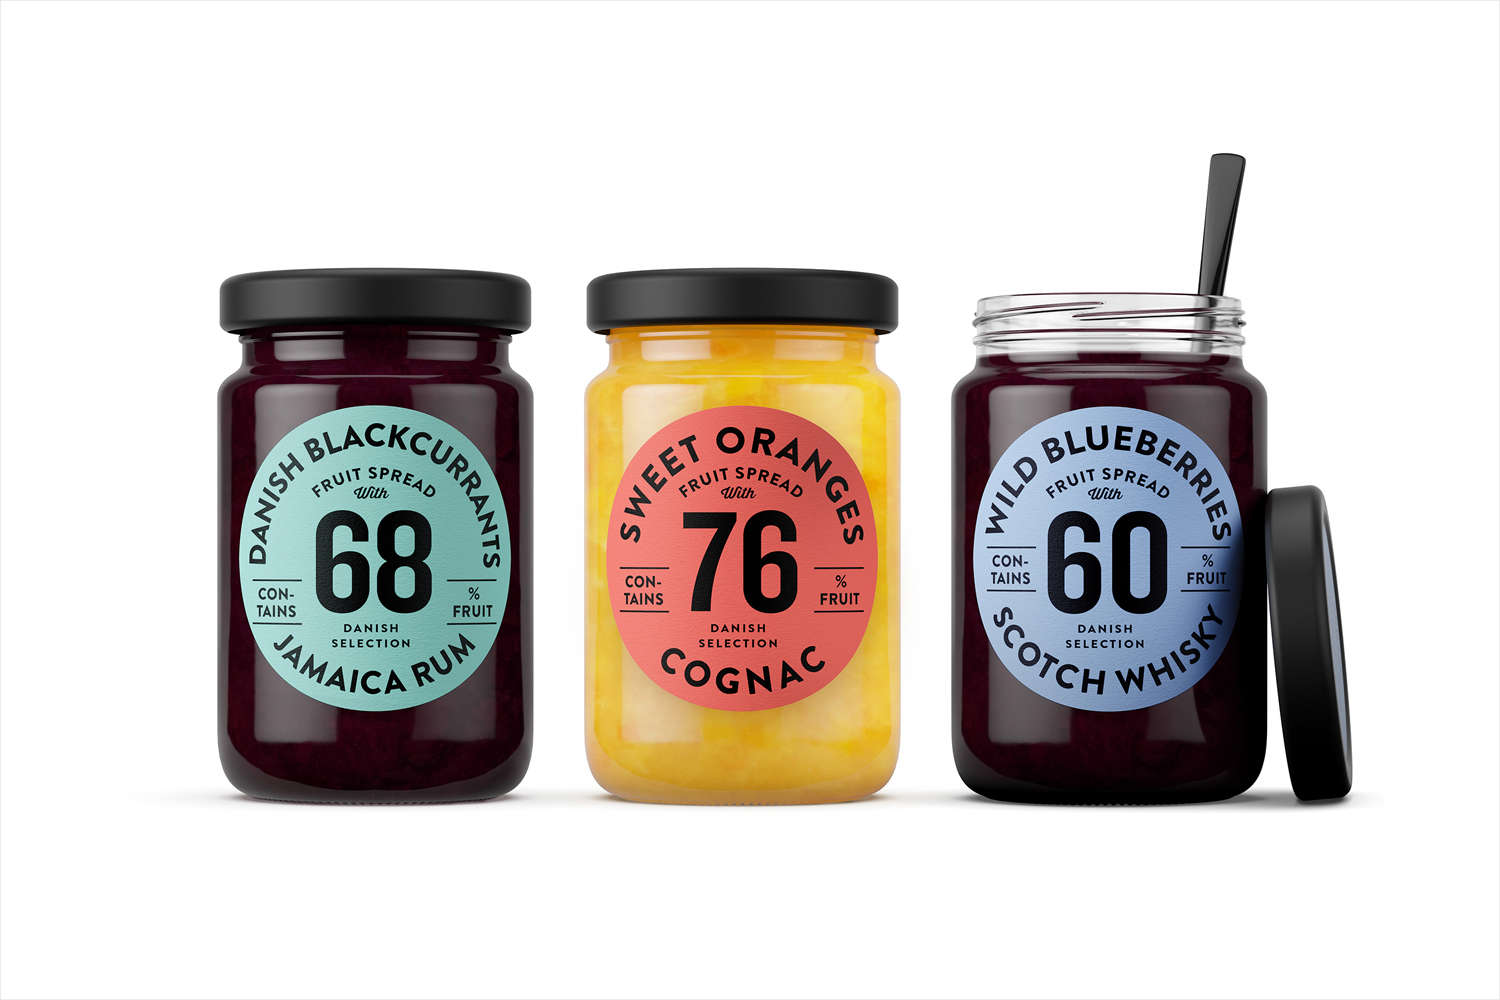 Package design for fruit spread range Danish Selection by Kontrapunkt